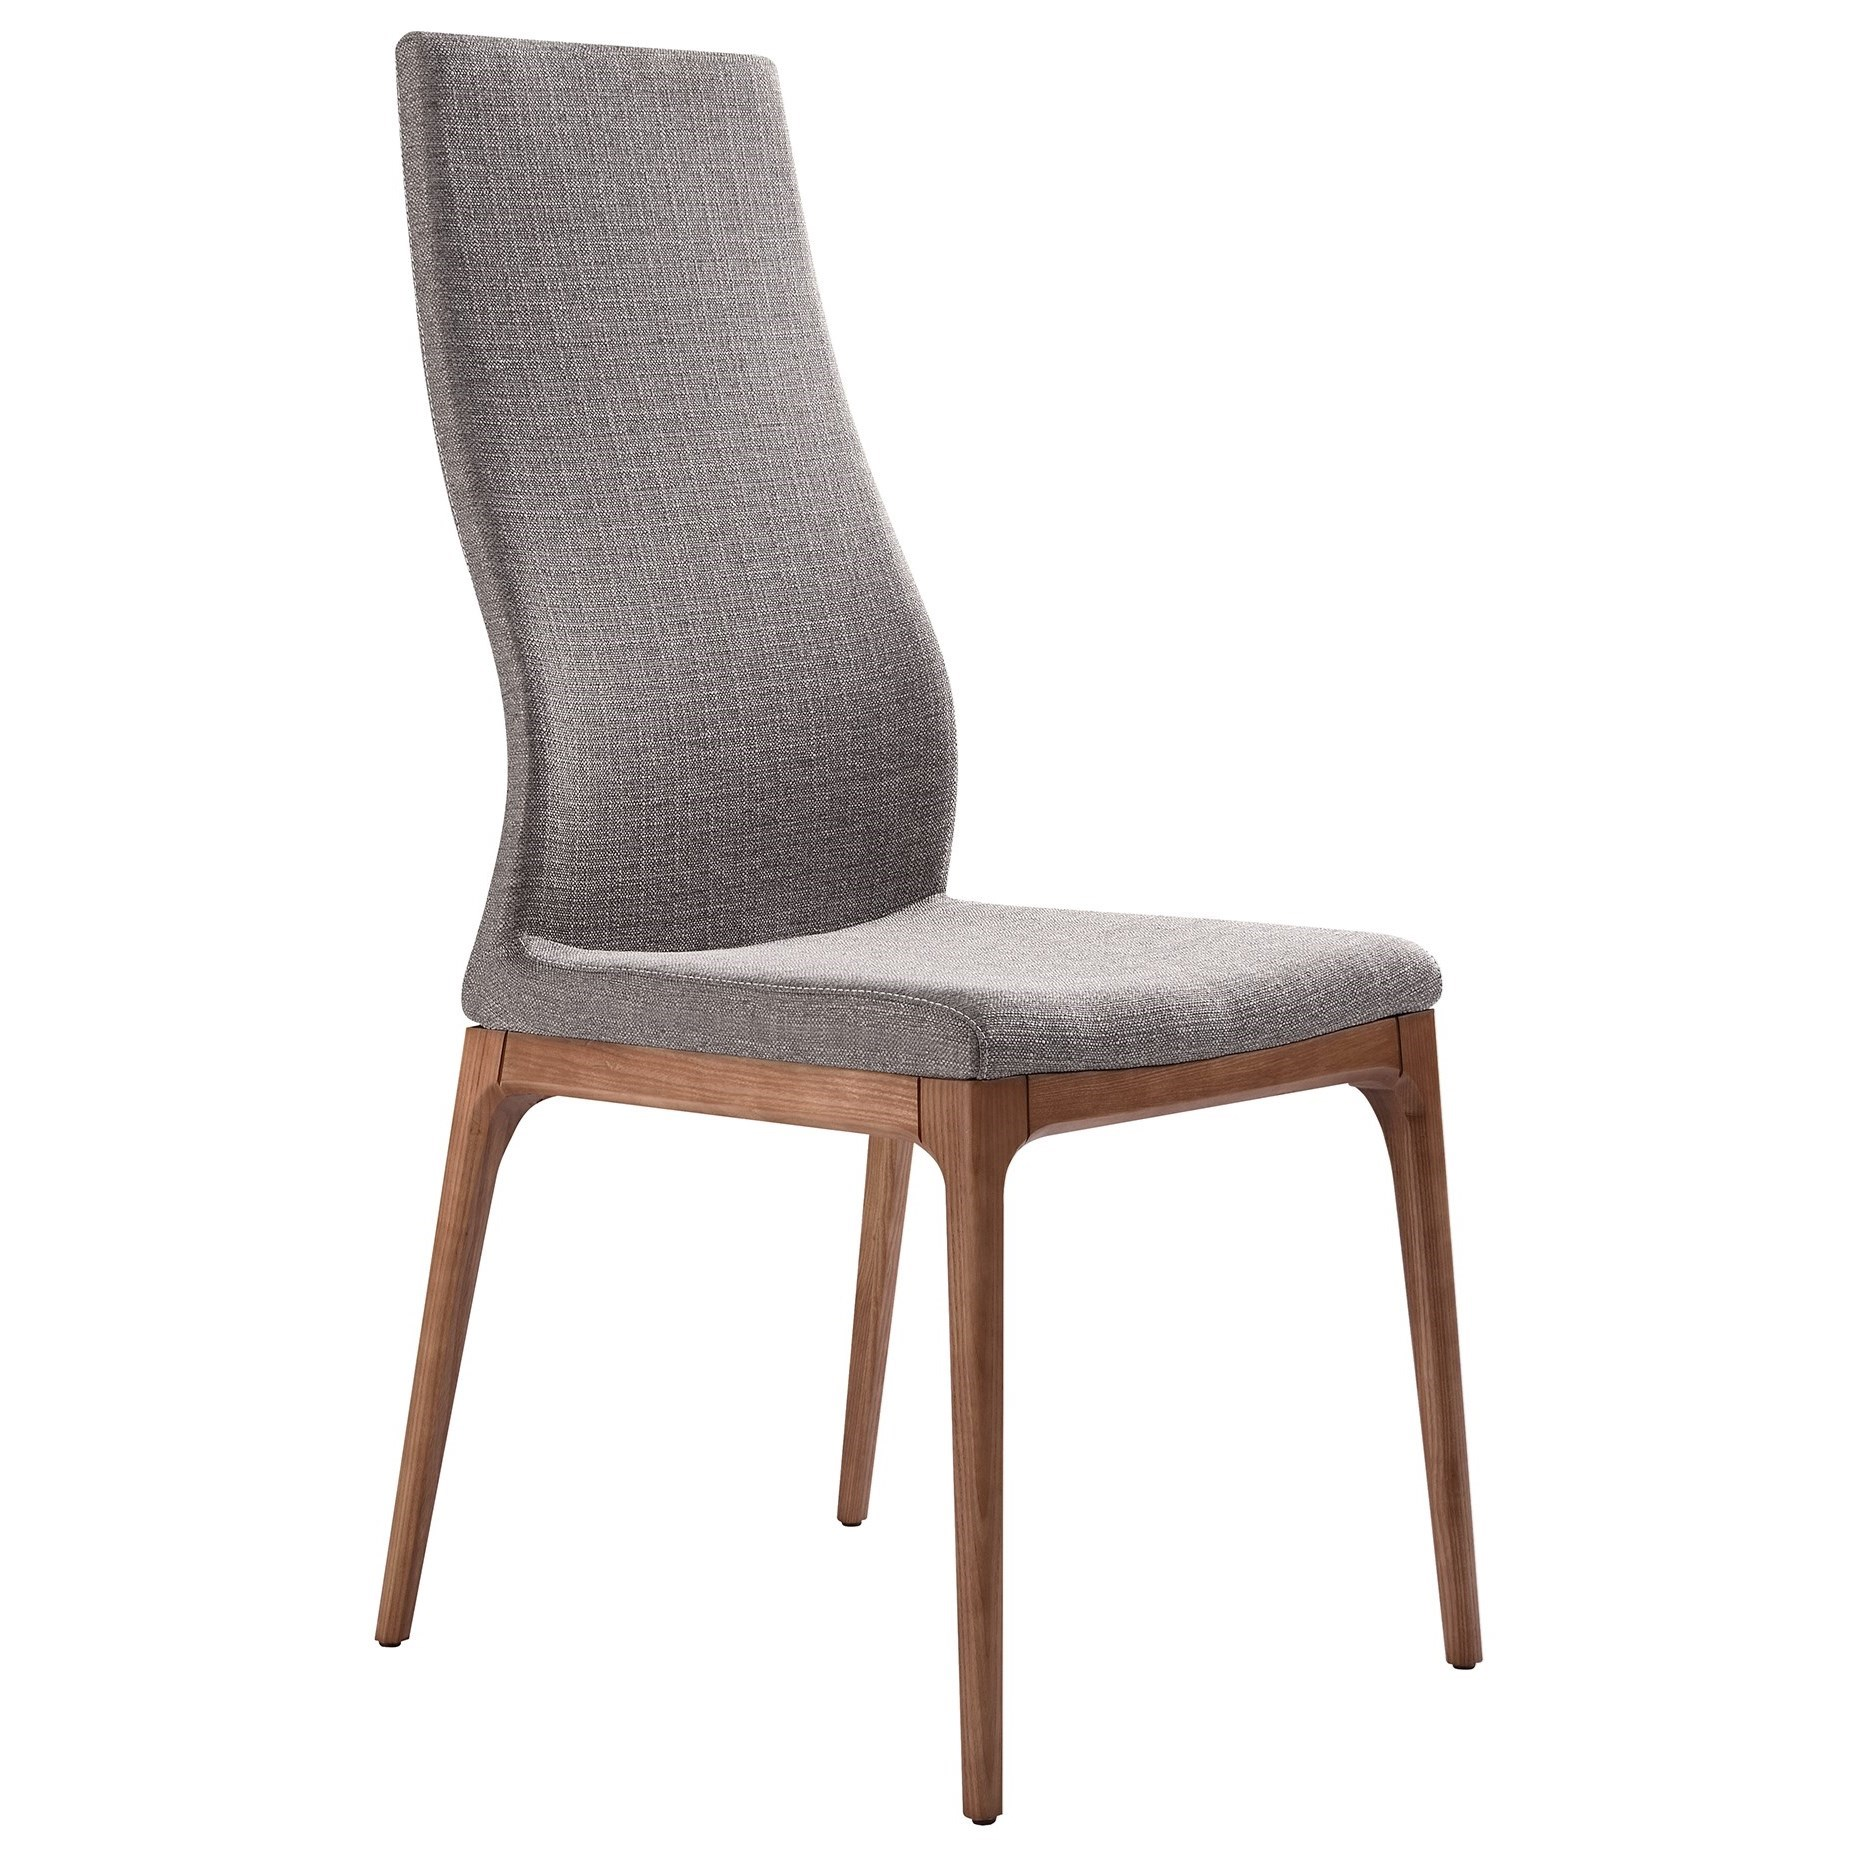 Parker Mid-Century Dining Chair - Set of 2 at Sadler's Home Furnishings